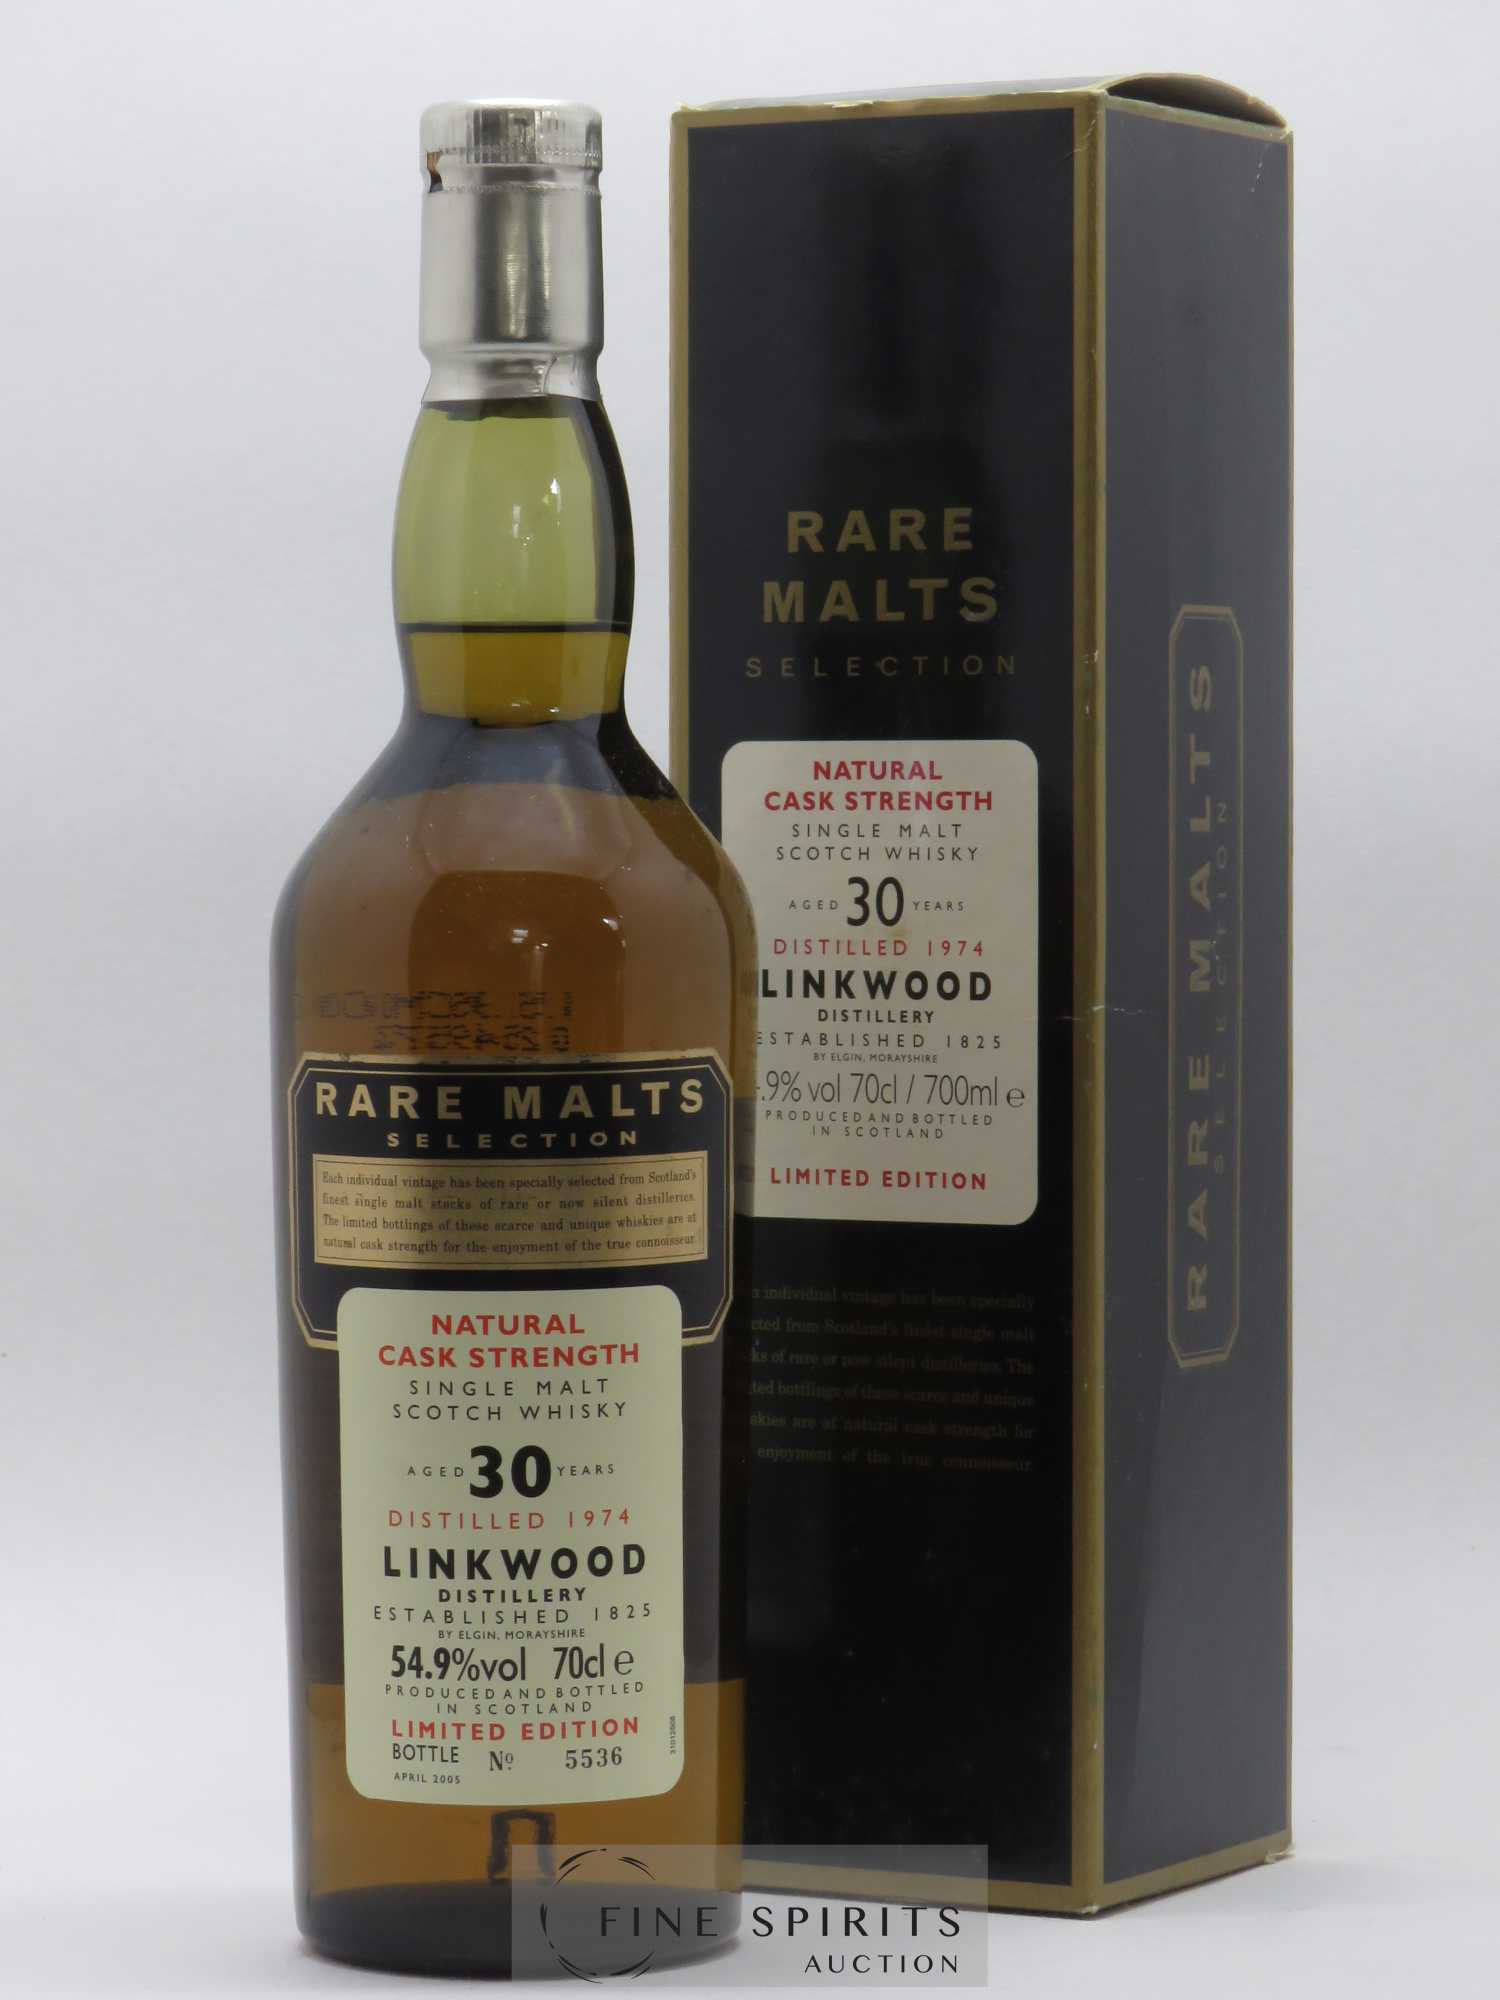 Linkwood 30 years 1974 Of. Rare Malts Selection Natural Cask Strengh - bottled 2005 Limited Edition   - Lot de 1 Bouteille